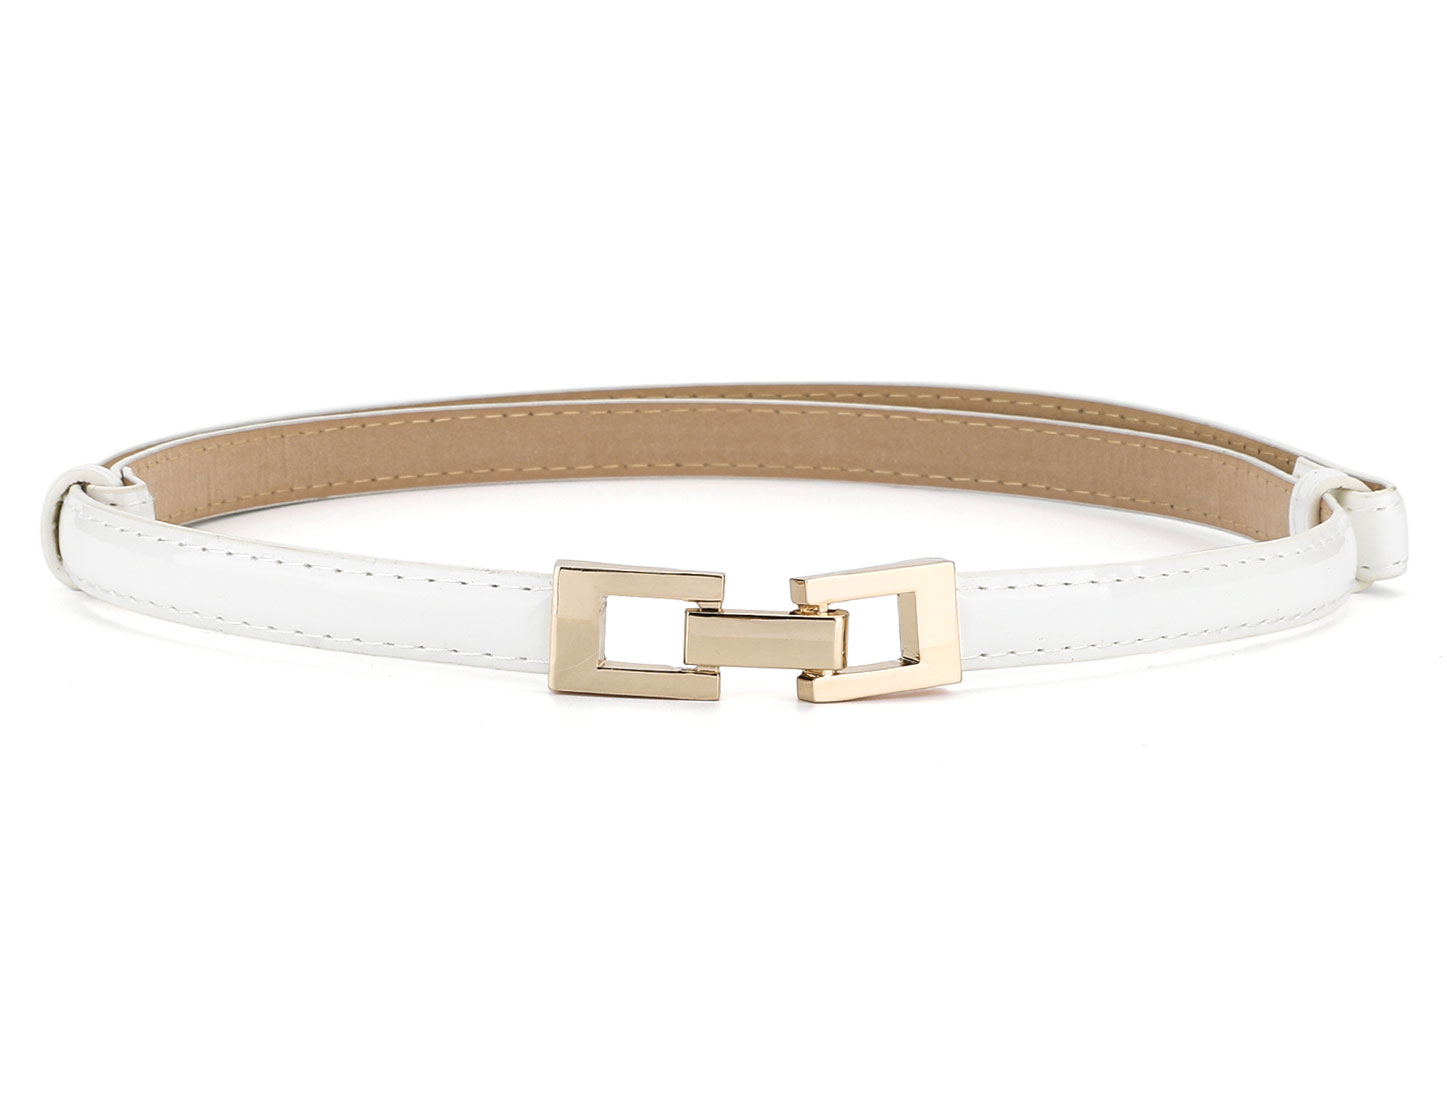 Metal Buckle Adjustable Stretchy Wide Waist Belt for Women White Square Buckle